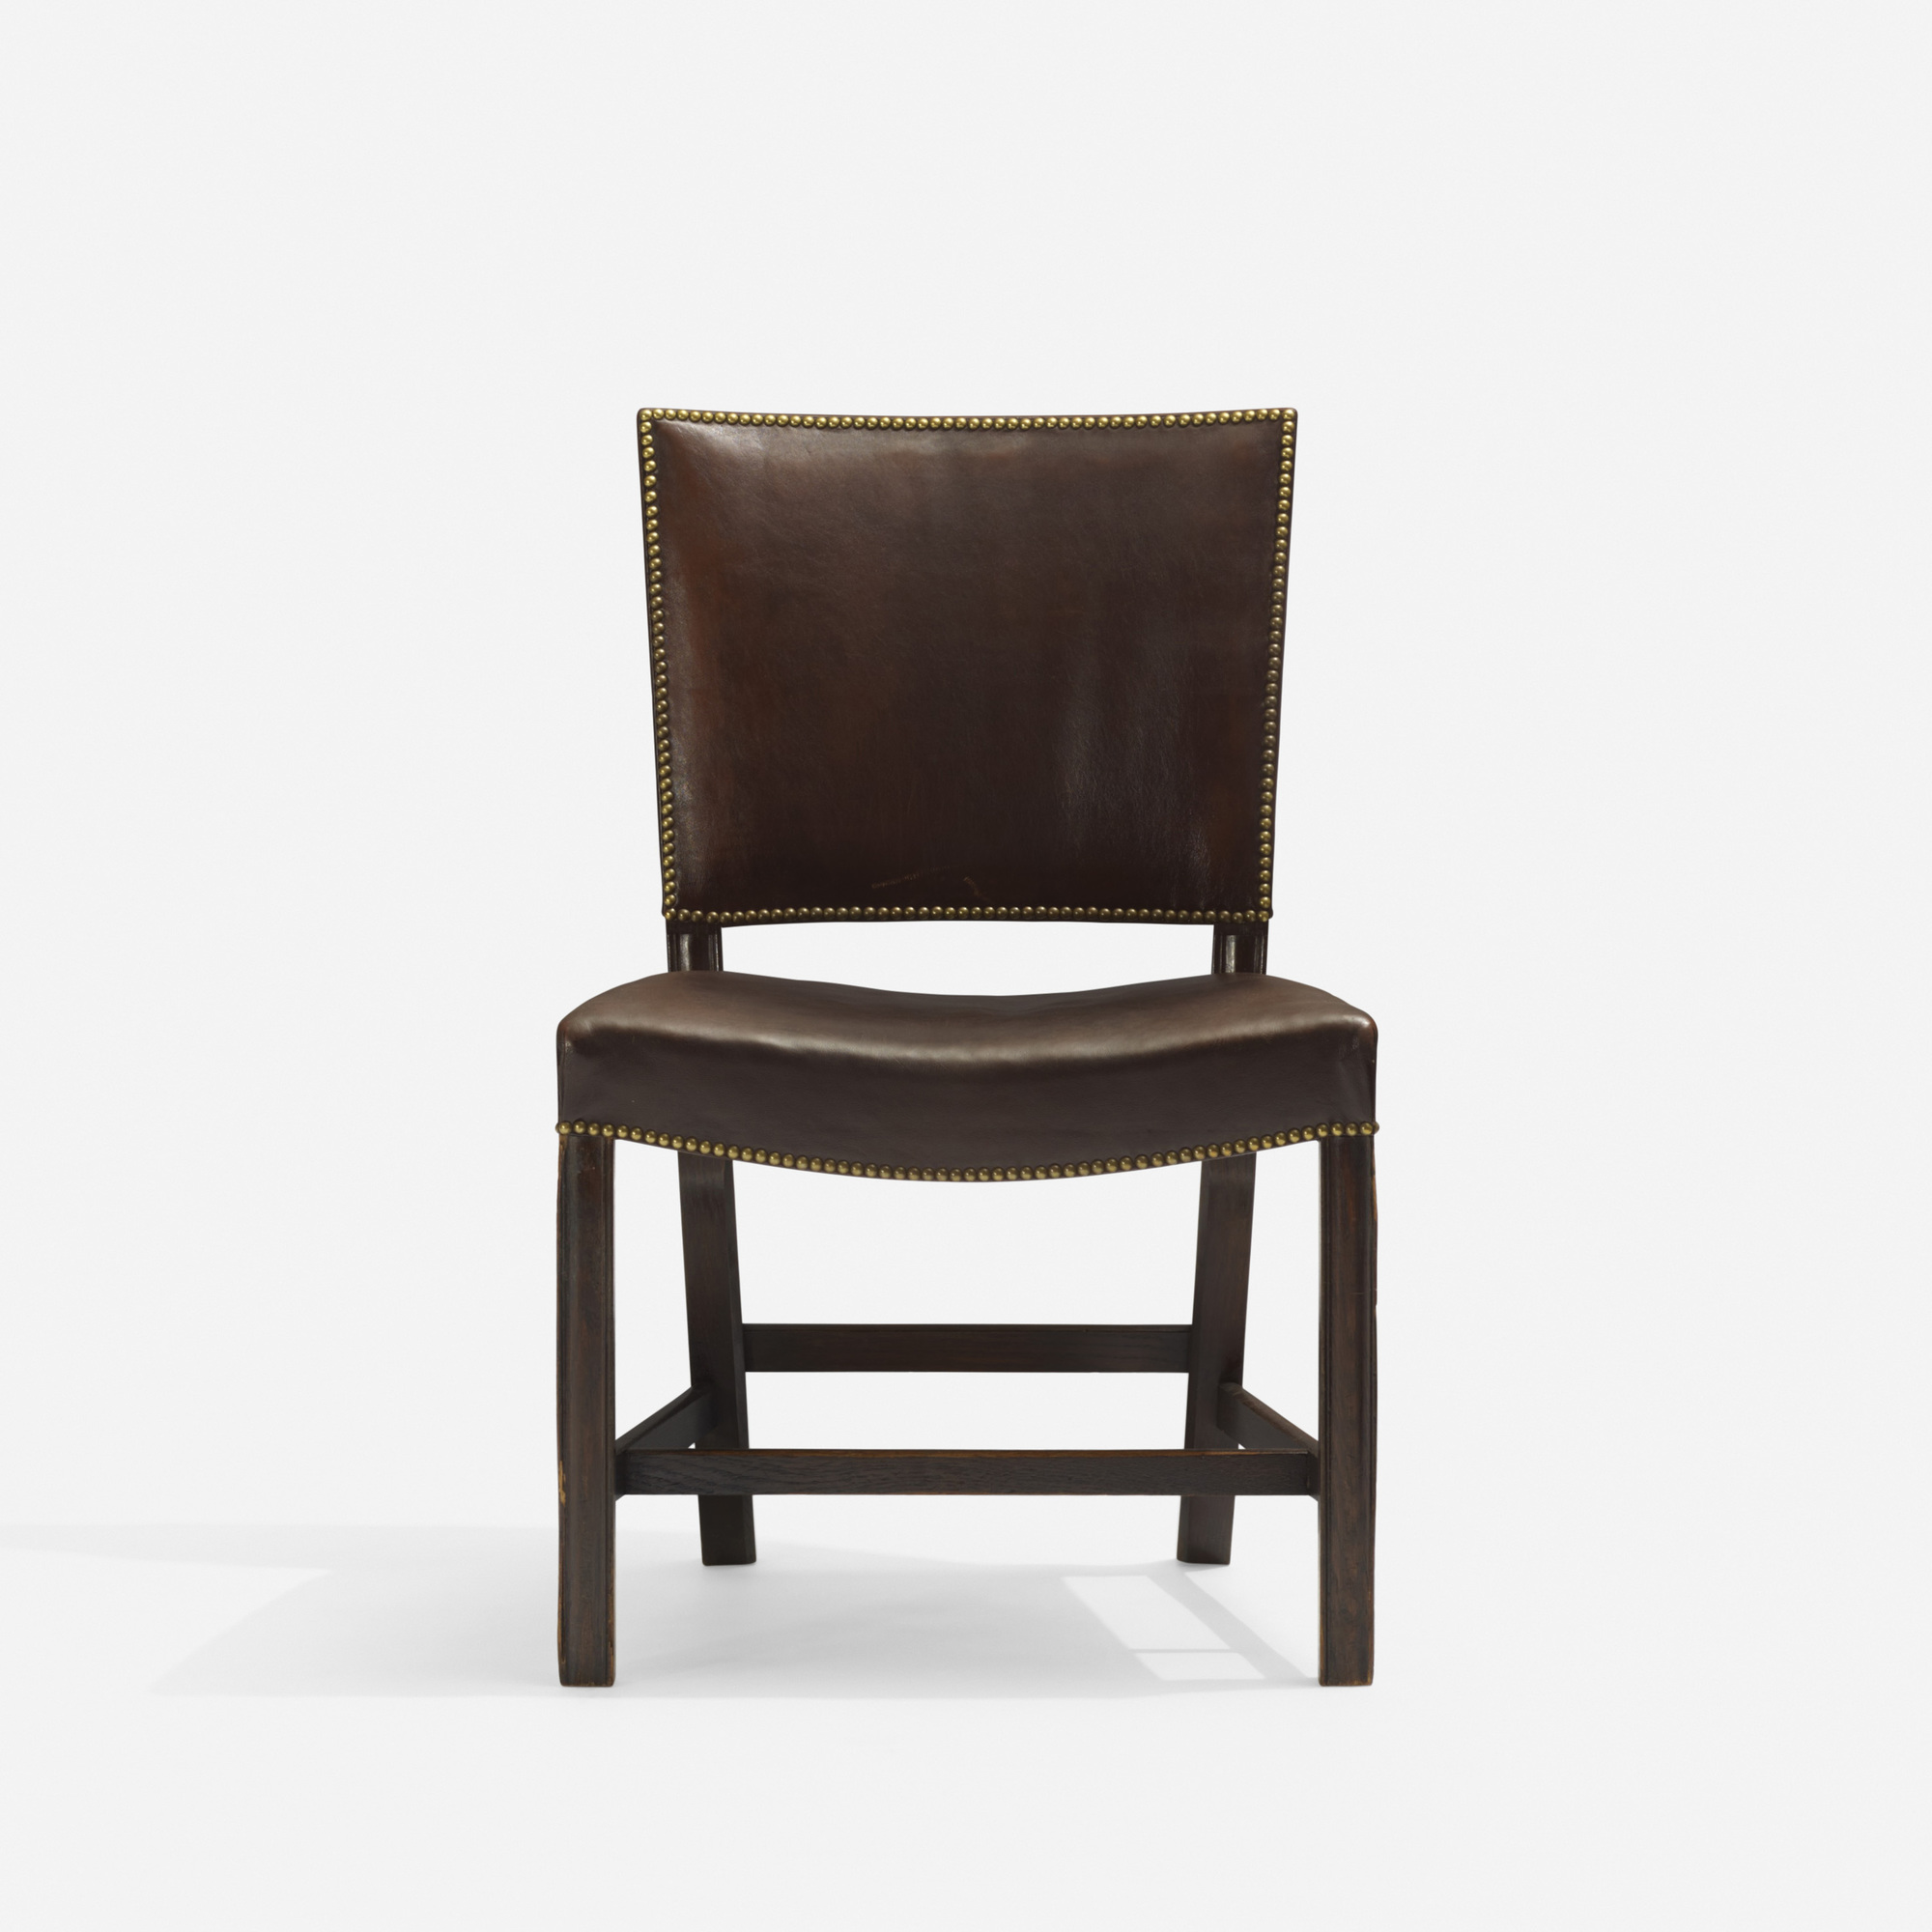 237: Kaare Klint / Barcelona chair, model 3758 (2 of 3)